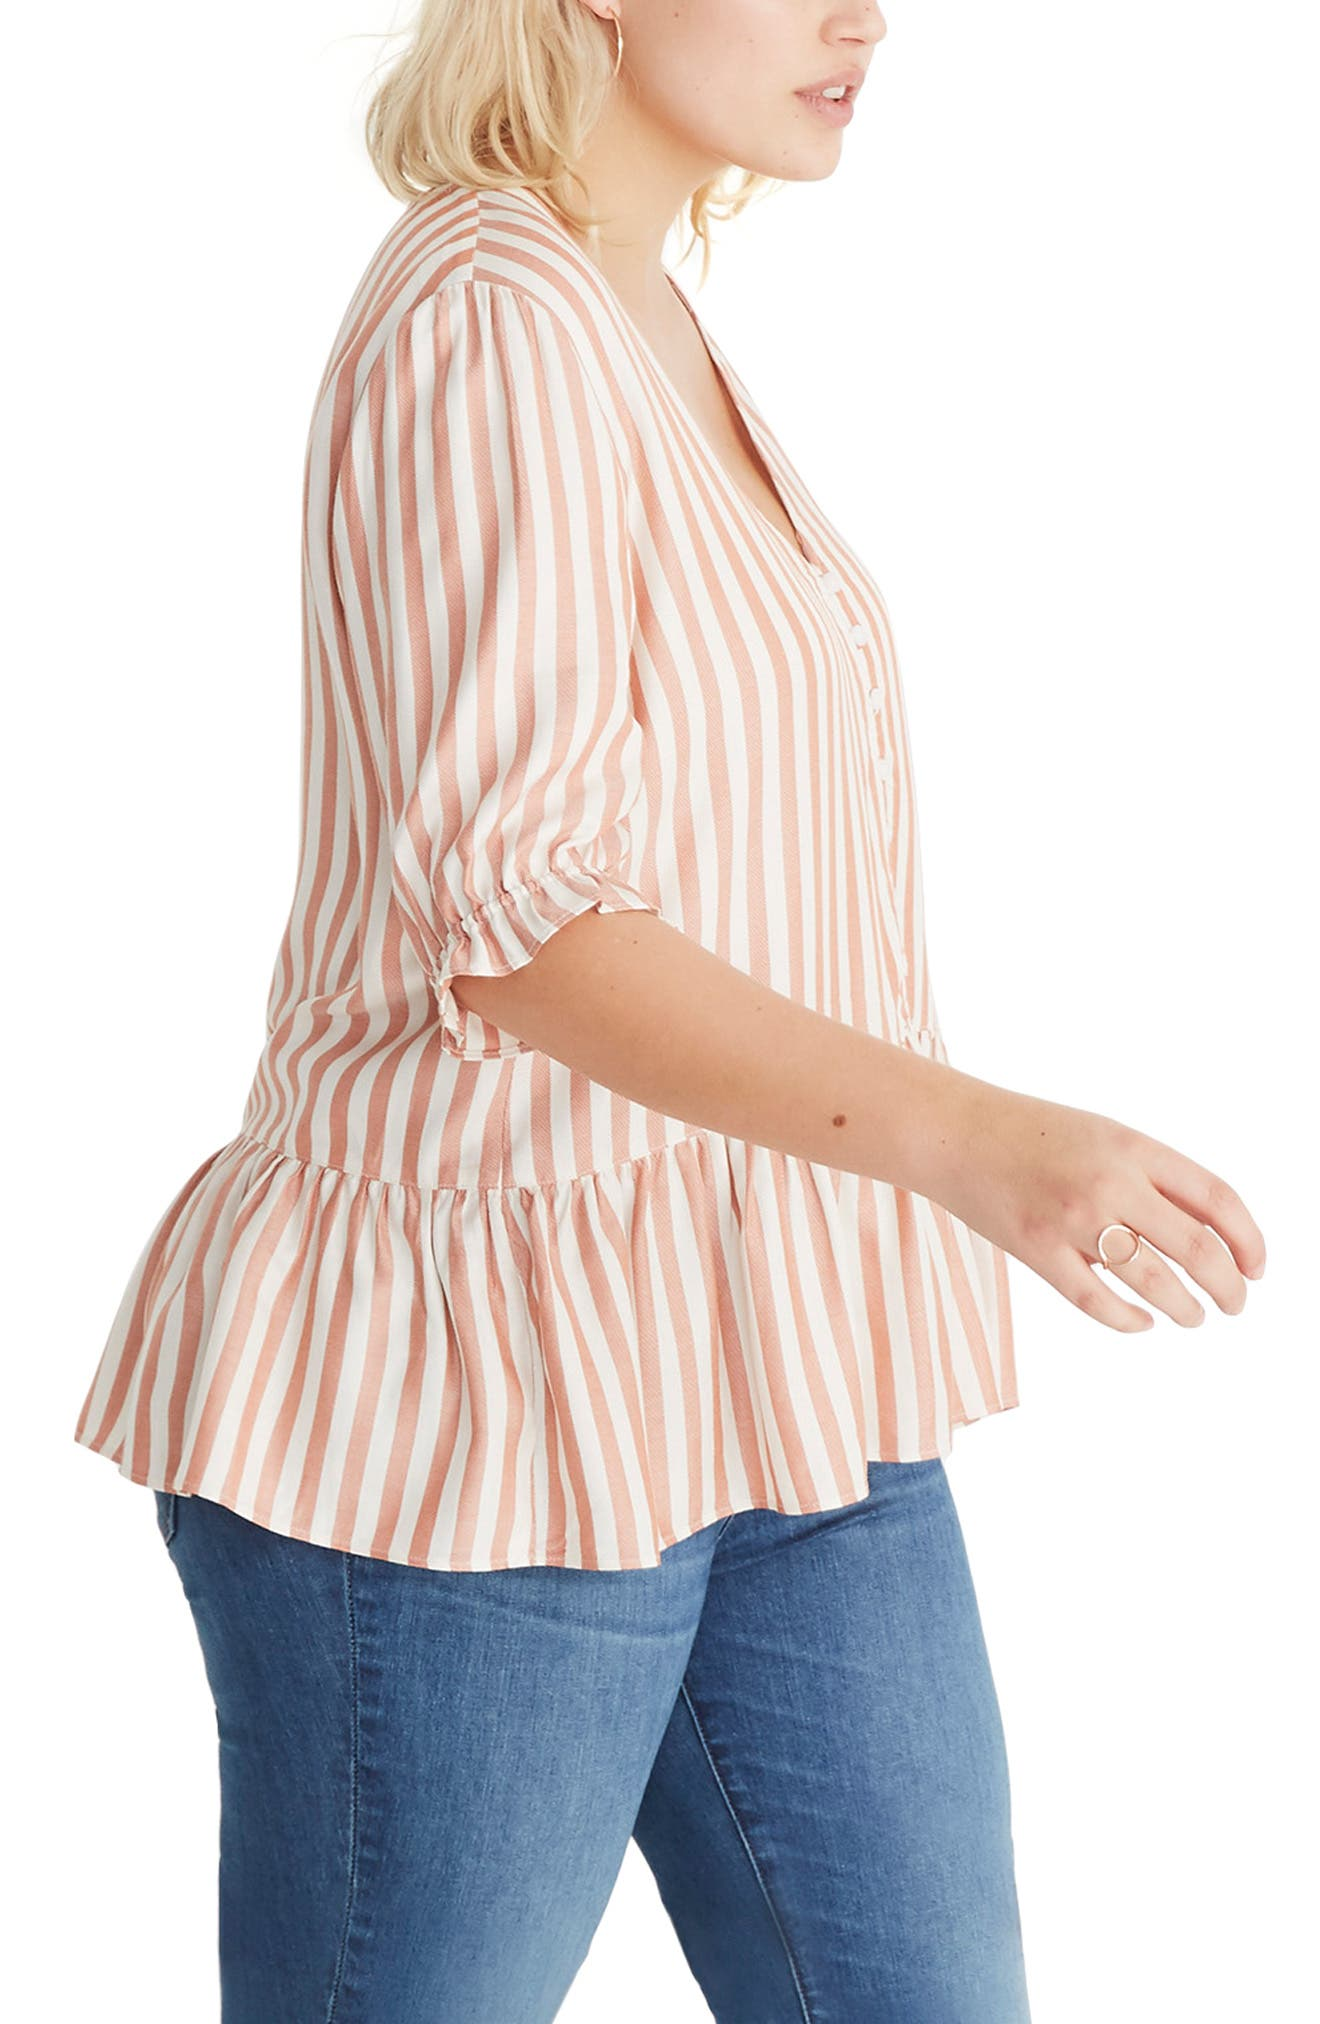 MADEWELL,                             Courtyard Ruffle Hem Top,                             Alternate thumbnail 6, color,                             STRIPE